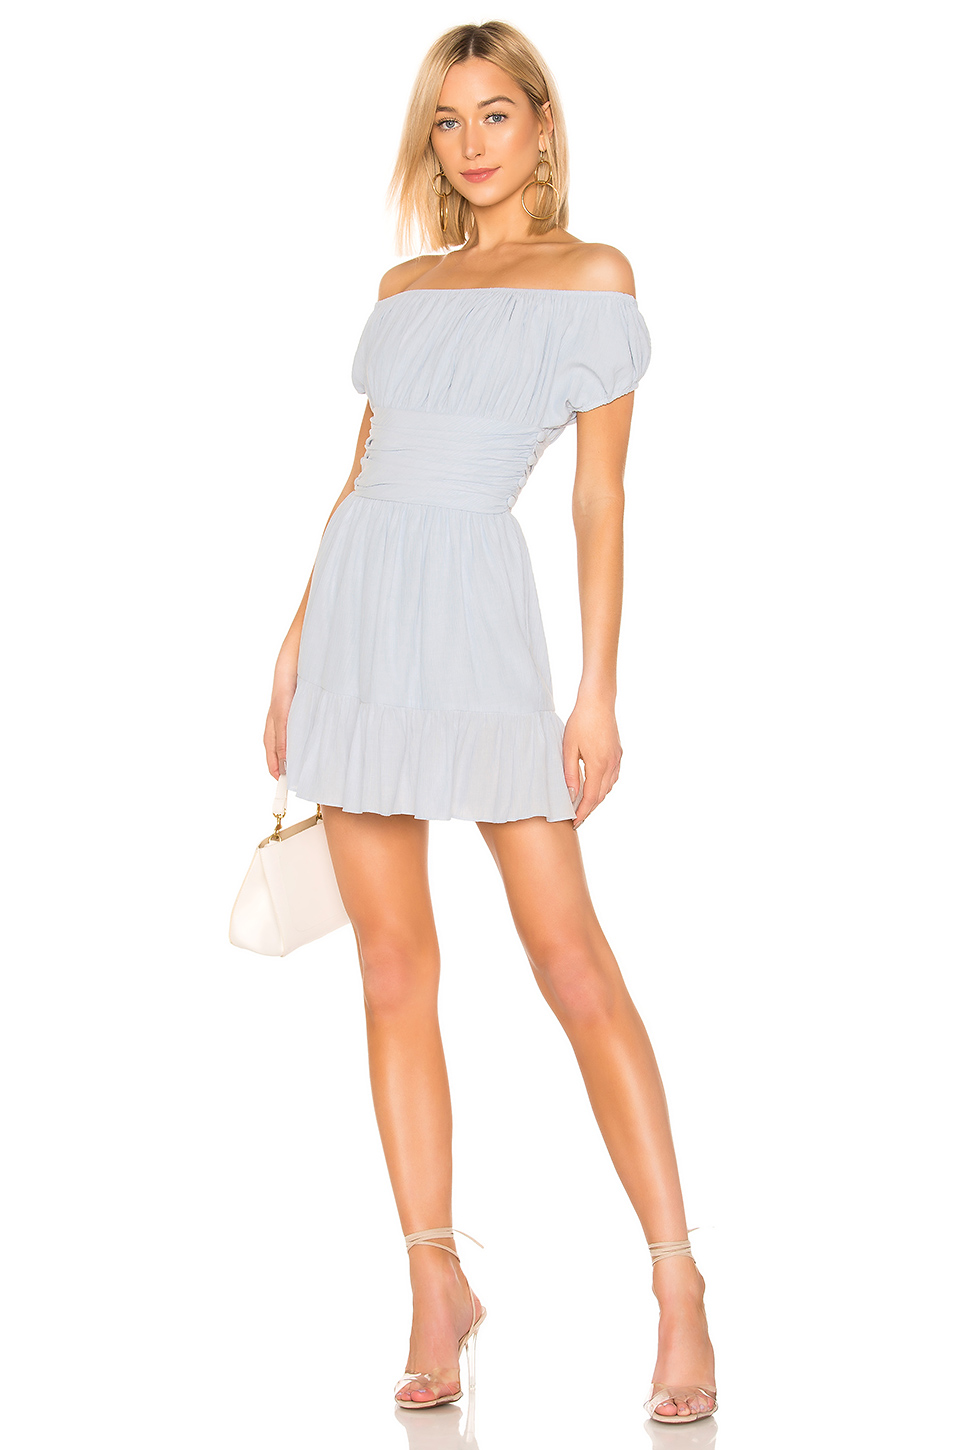 House of Harlow x Revolve 1960 Daphne Dress by House of Harlow 1960, available on revolve.com for $198 Kendall Jenner Dress Exact Product